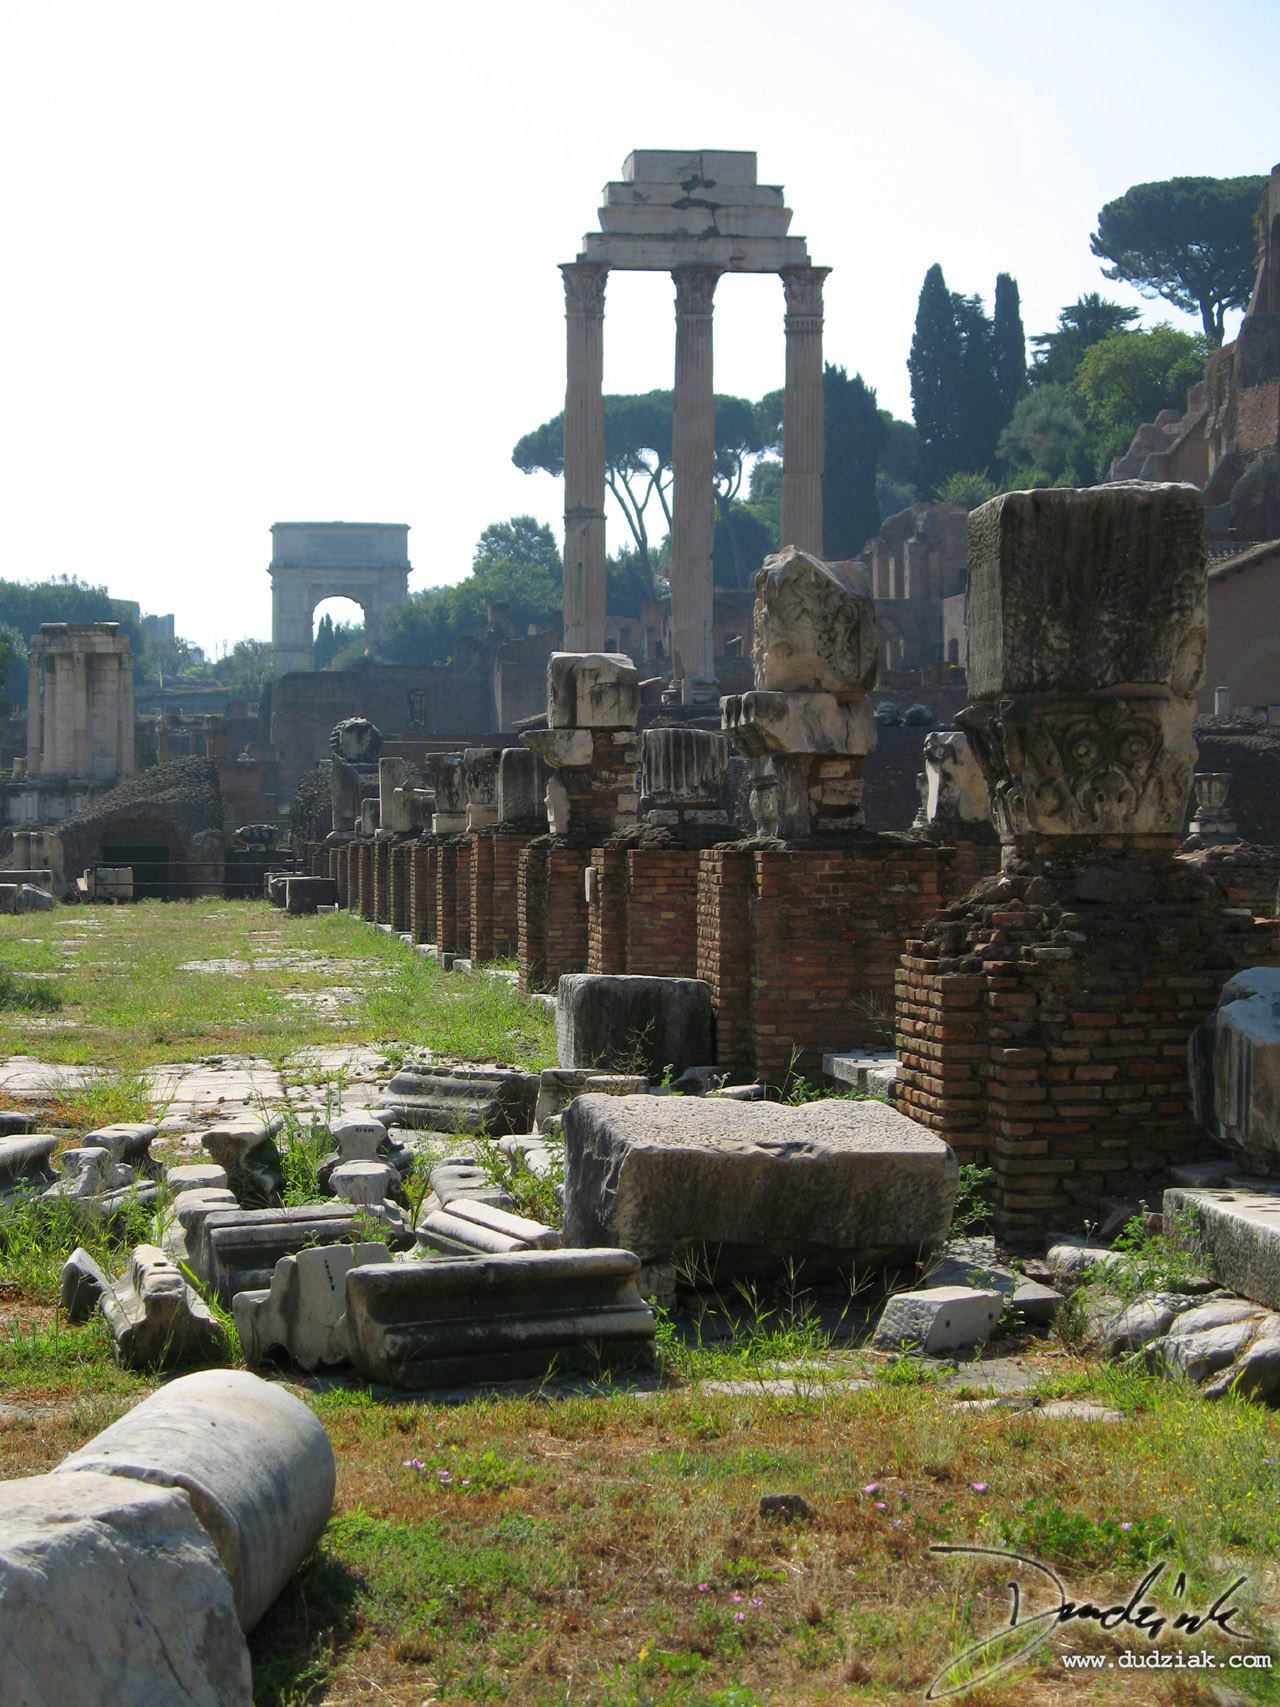 The three Remaining columns of the Temple of Castor and Pollux in the Roman Forum in Rome, Italy.  The Arch of Titus can be seen clearly in the distance.